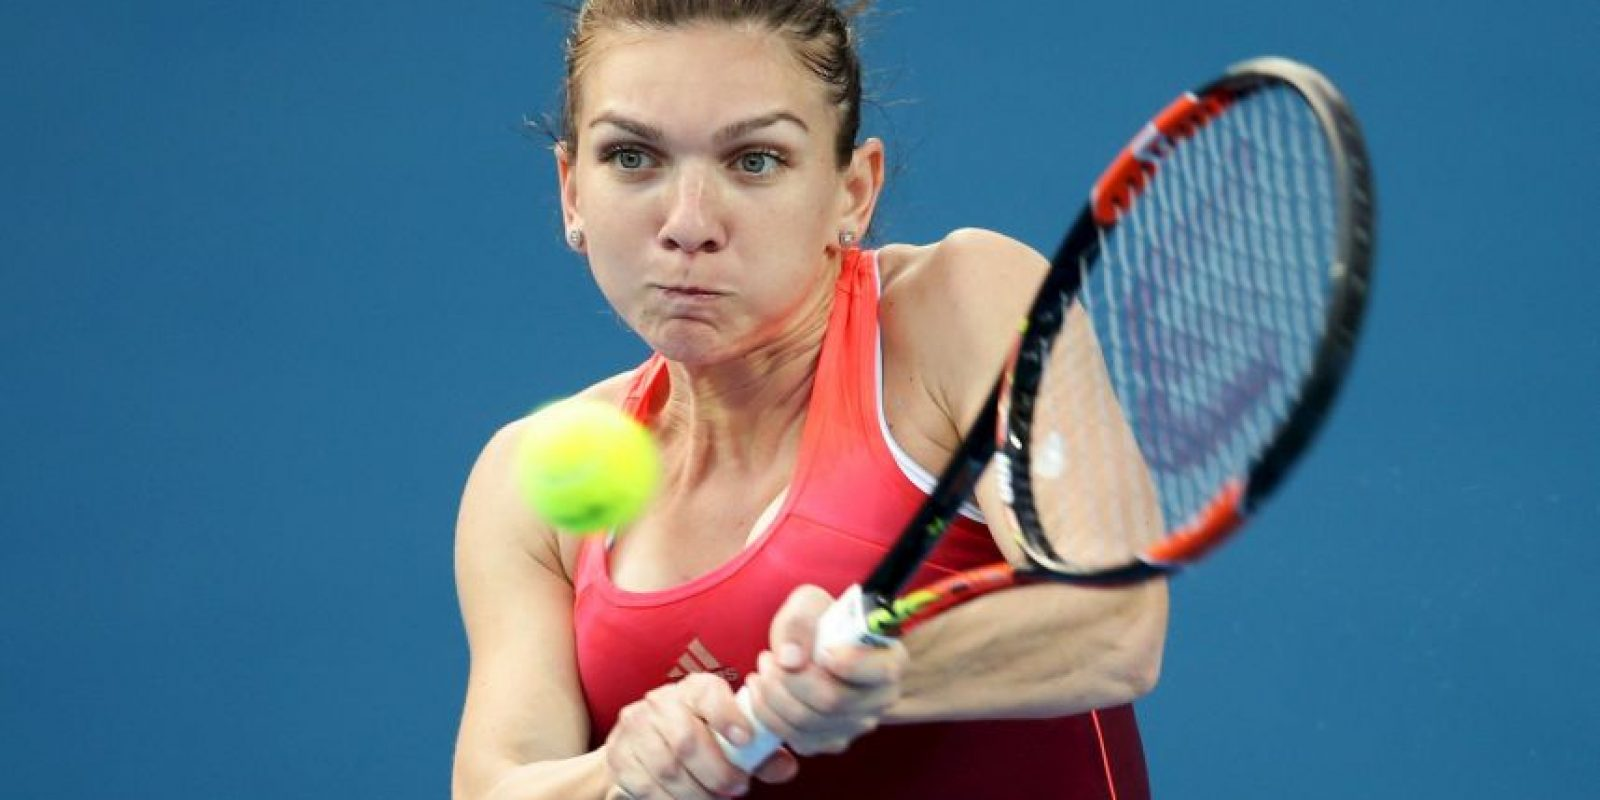 Simona Halep (Rumania) / Ranking WTA: 5ª Foto: Getty Images